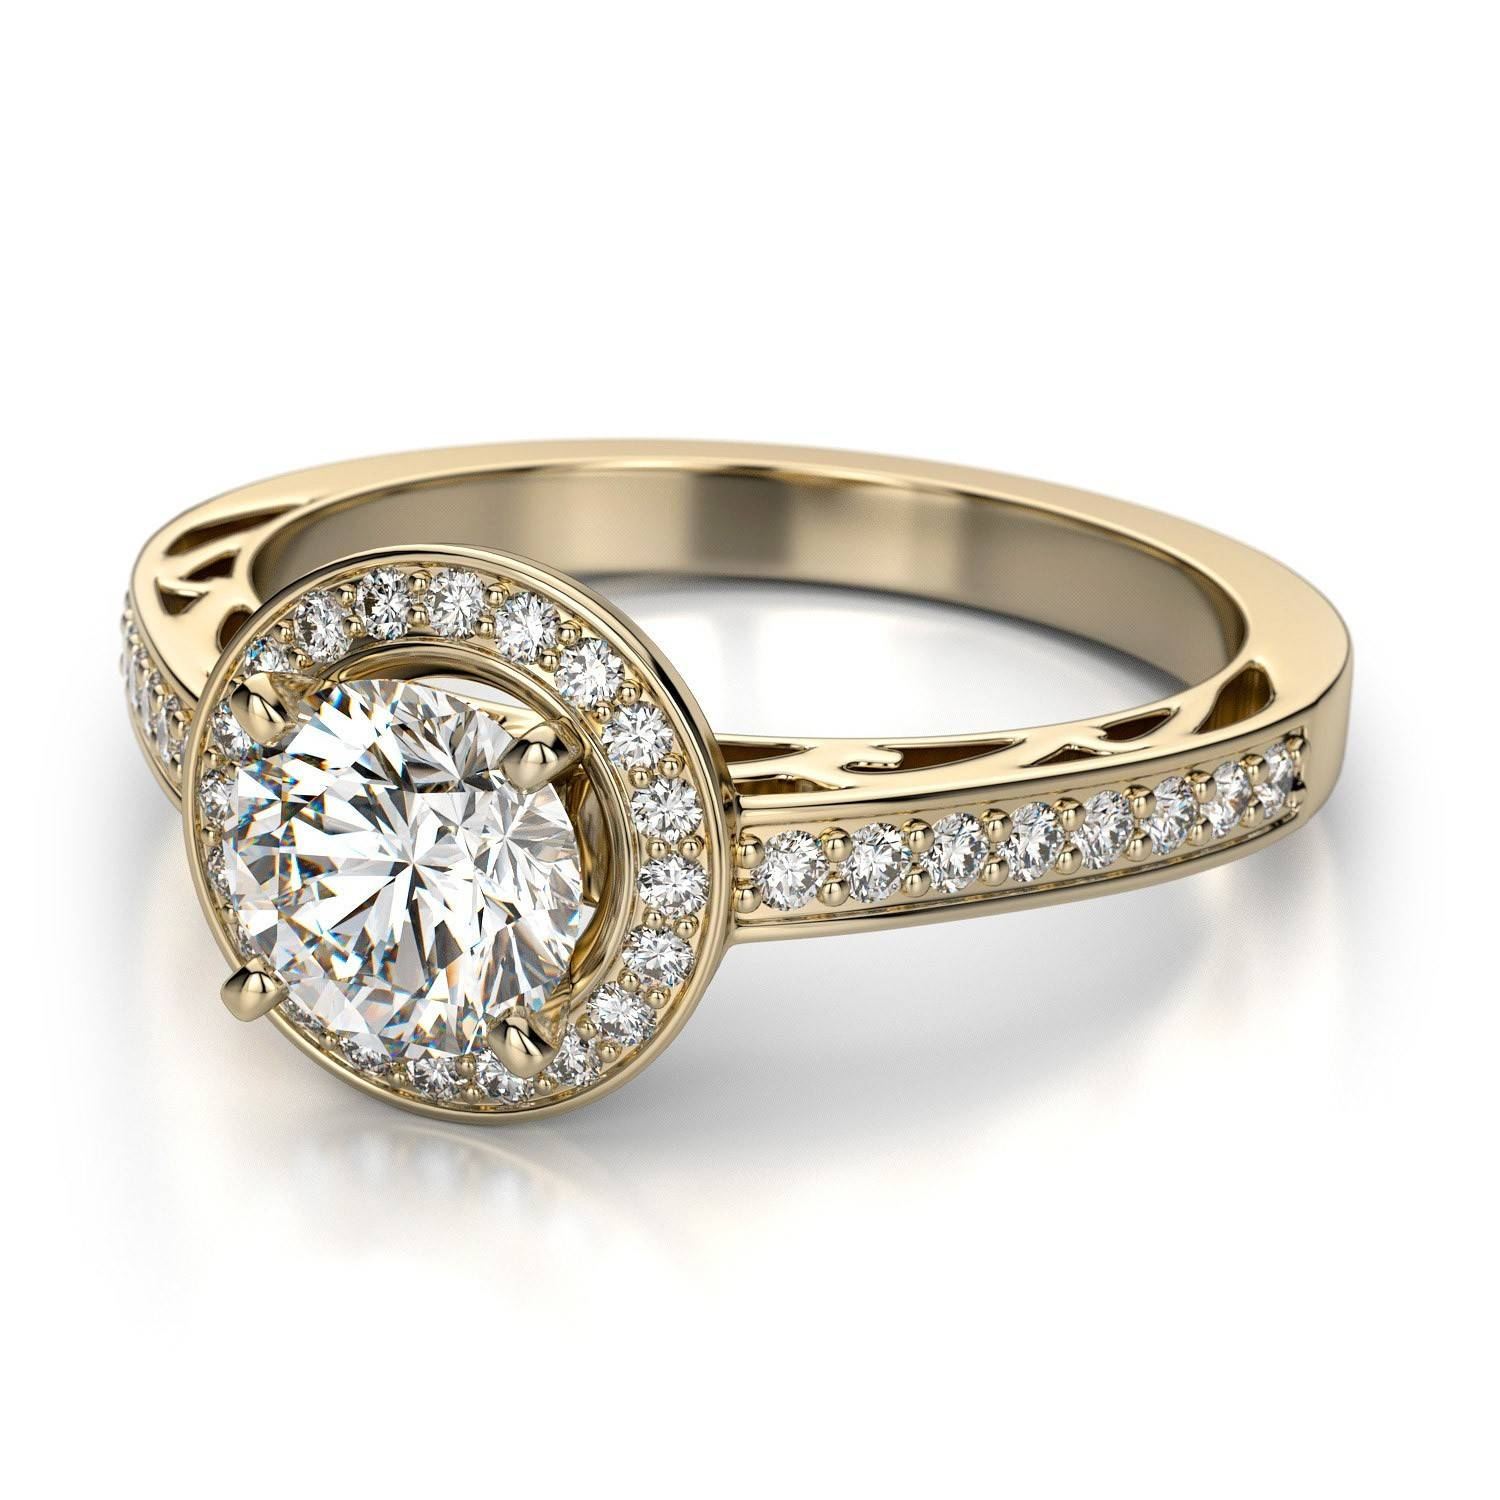 Vintage Gold Diamond Engagement Rings | Wedding, Promise, Diamond For Vintage Halo Engagement Ring Settings (View 6 of 15)